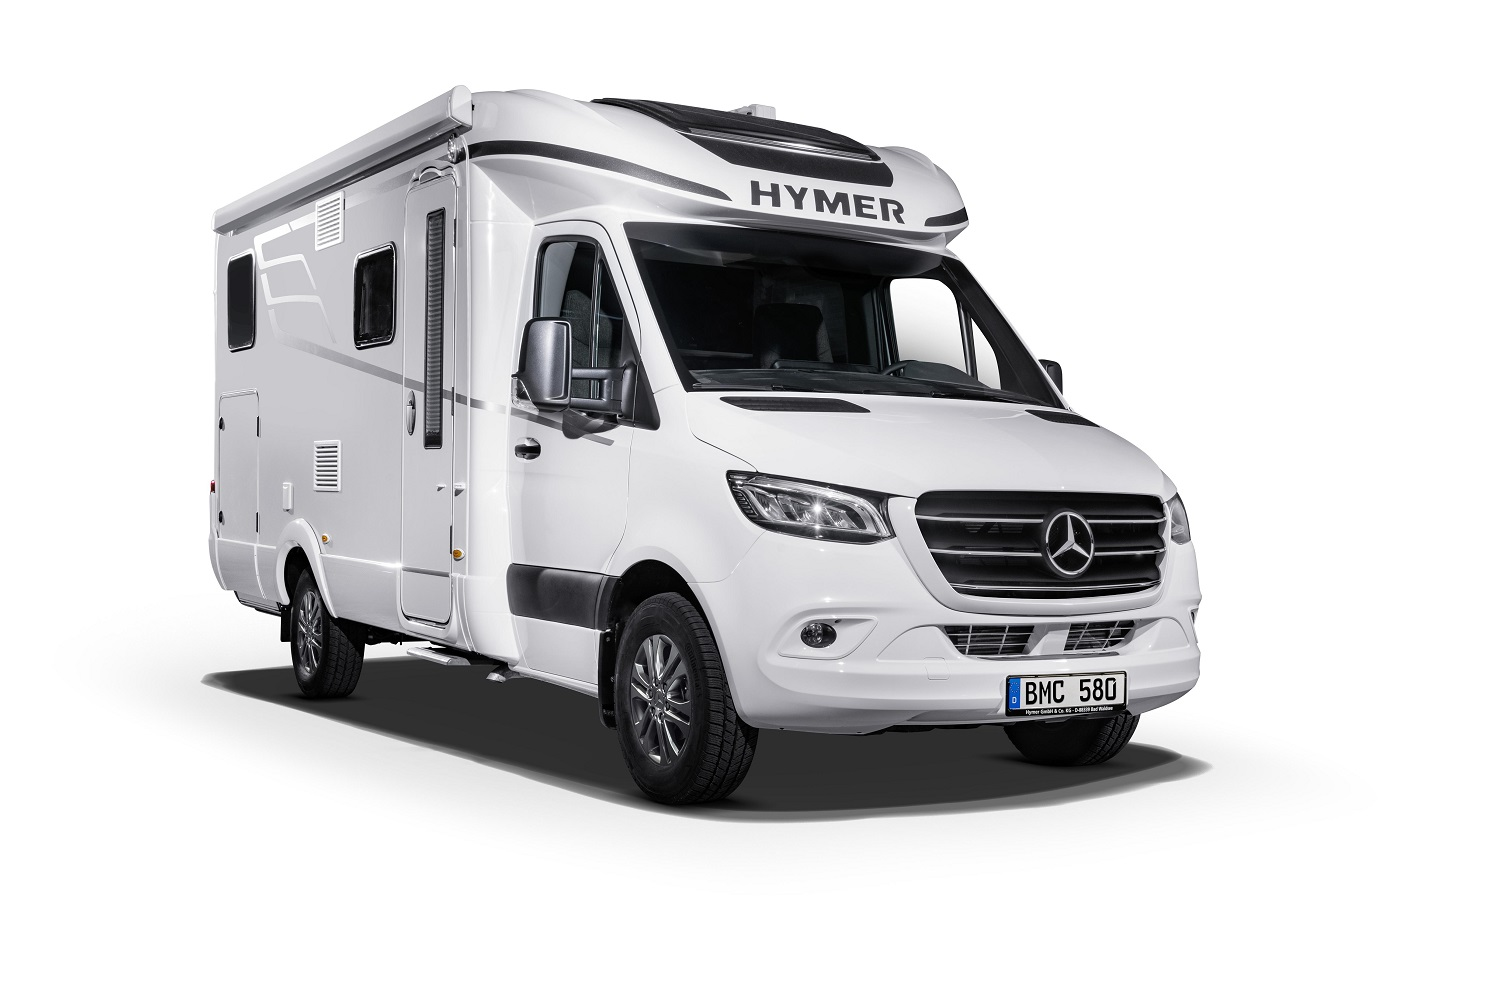 Rent Easy UK Exclusive Extra Tramp CL 614 or similar